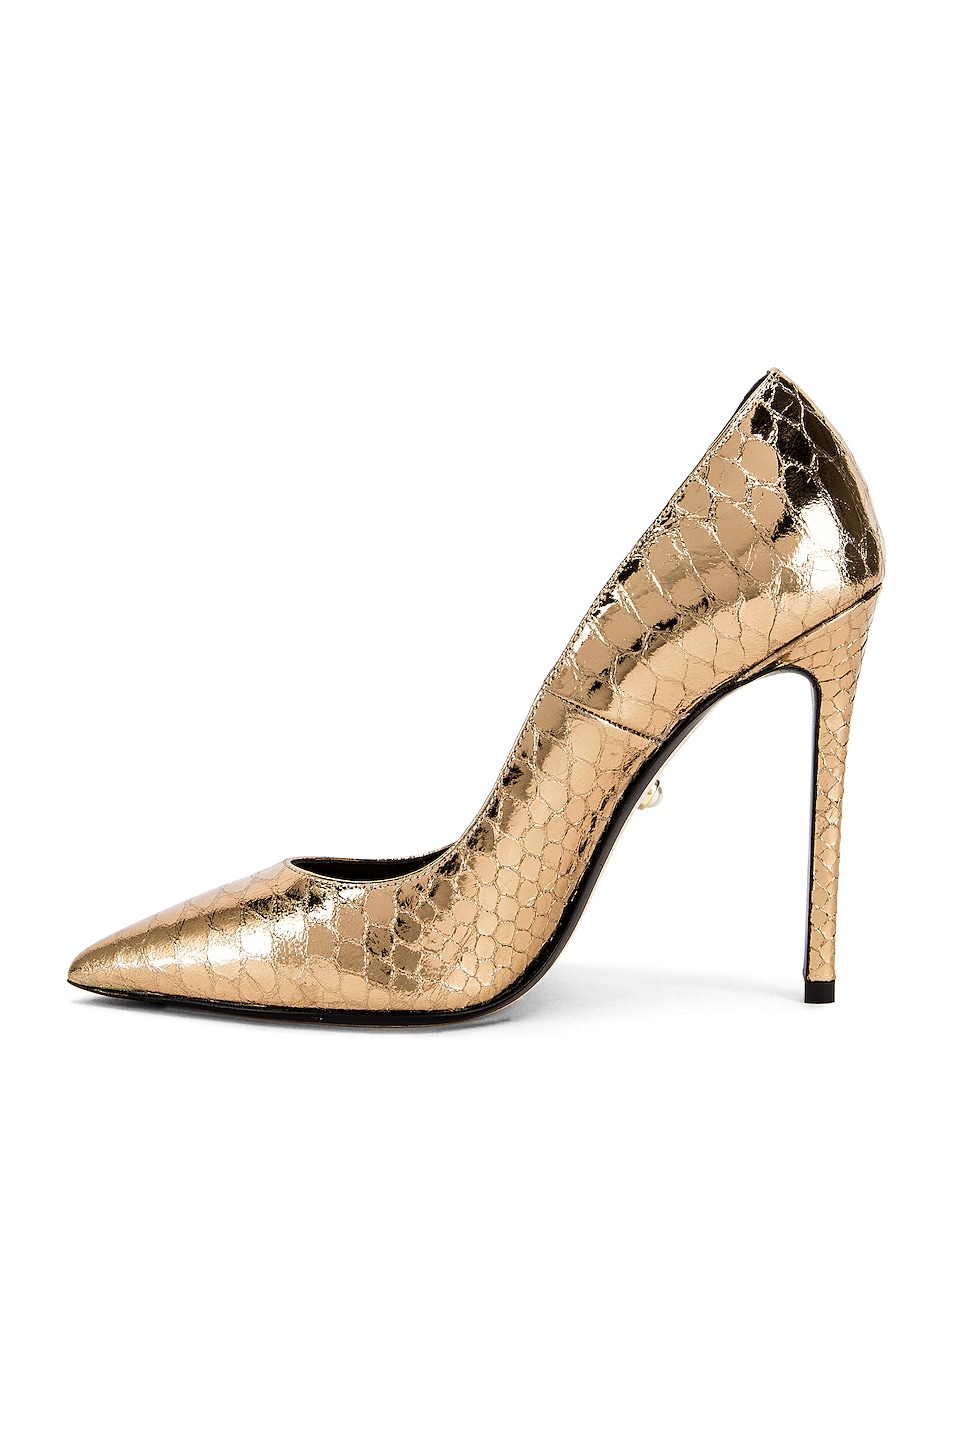 Image 5 of ALEVI Milano Alevi Carrie Pump in Gold Snake